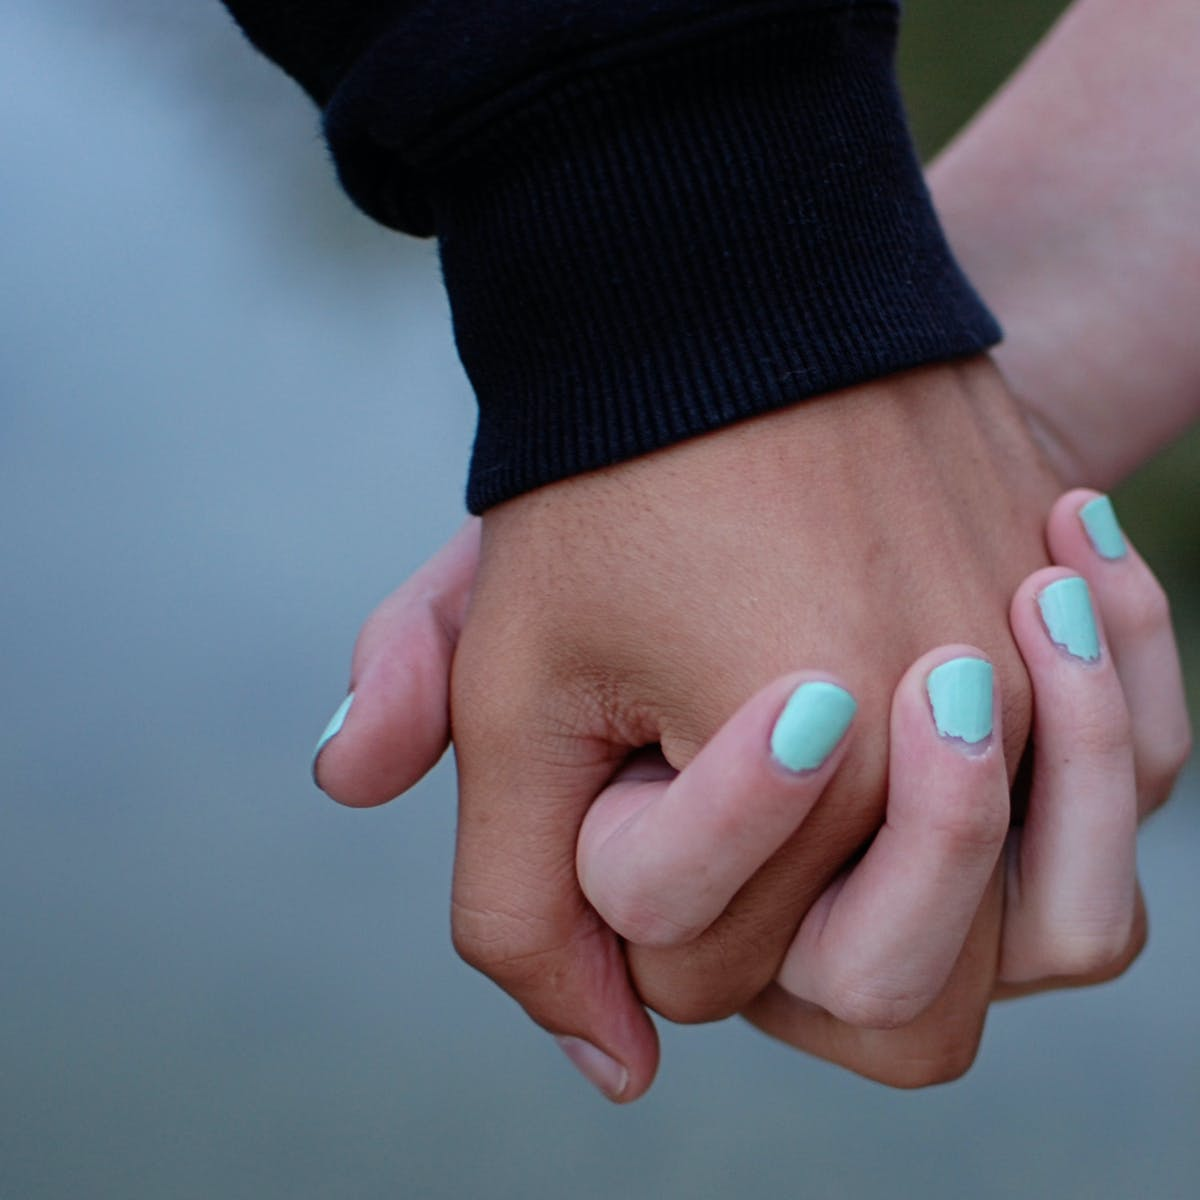 How to Improve Your Long-Term Relationship With the Help of